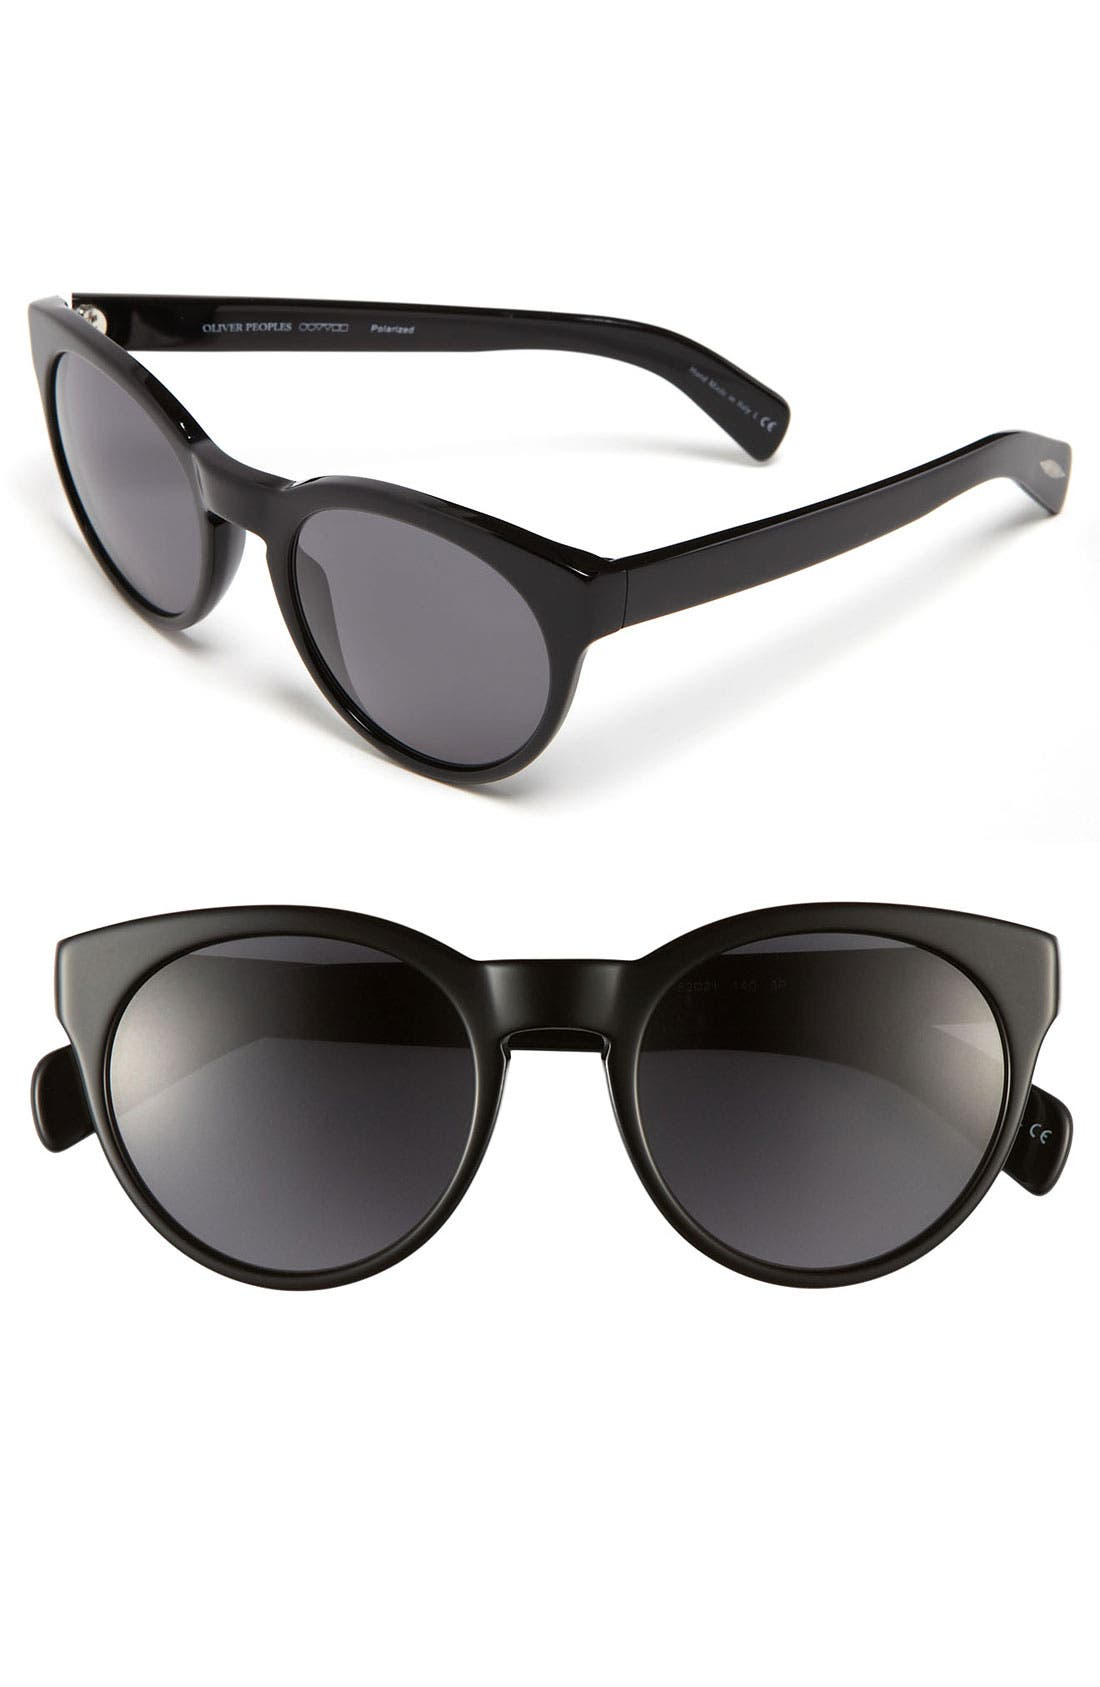 Main Image - Oliver Peoples 52mm Polarized Sunglasses